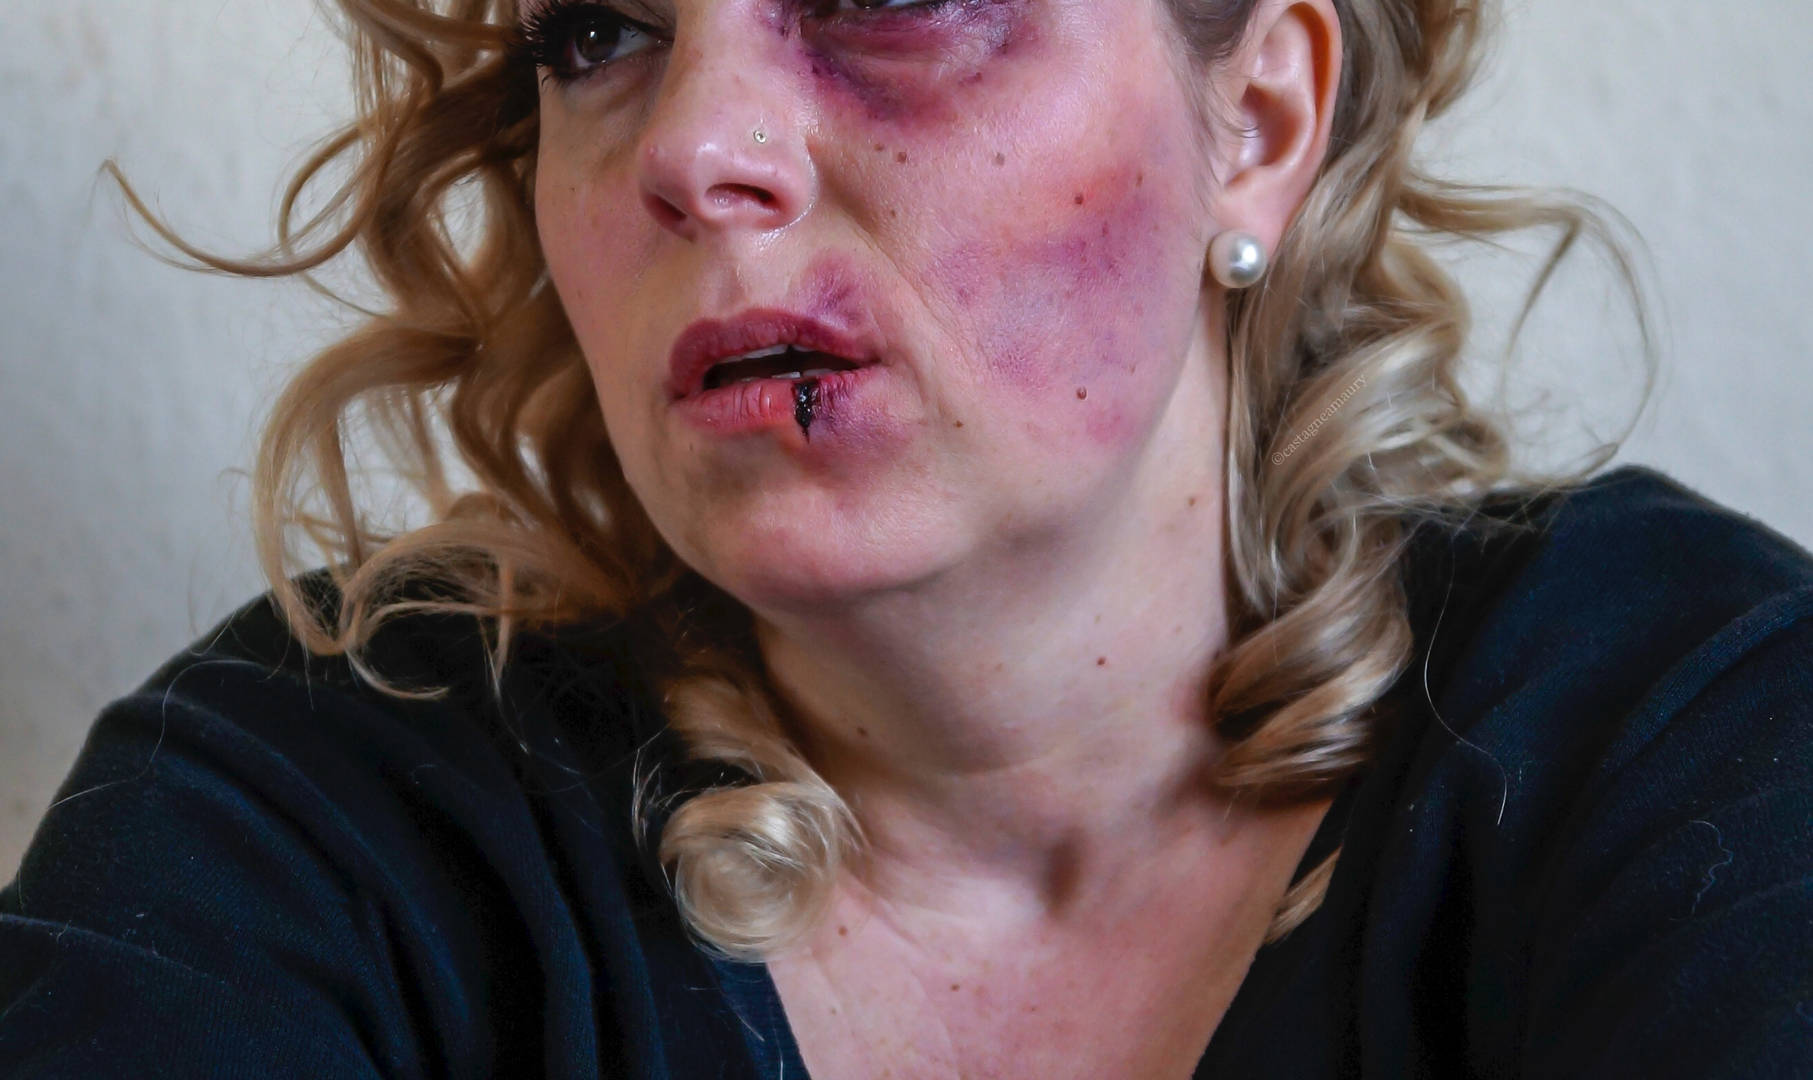 make-up-bruises-woman-special-effects-va